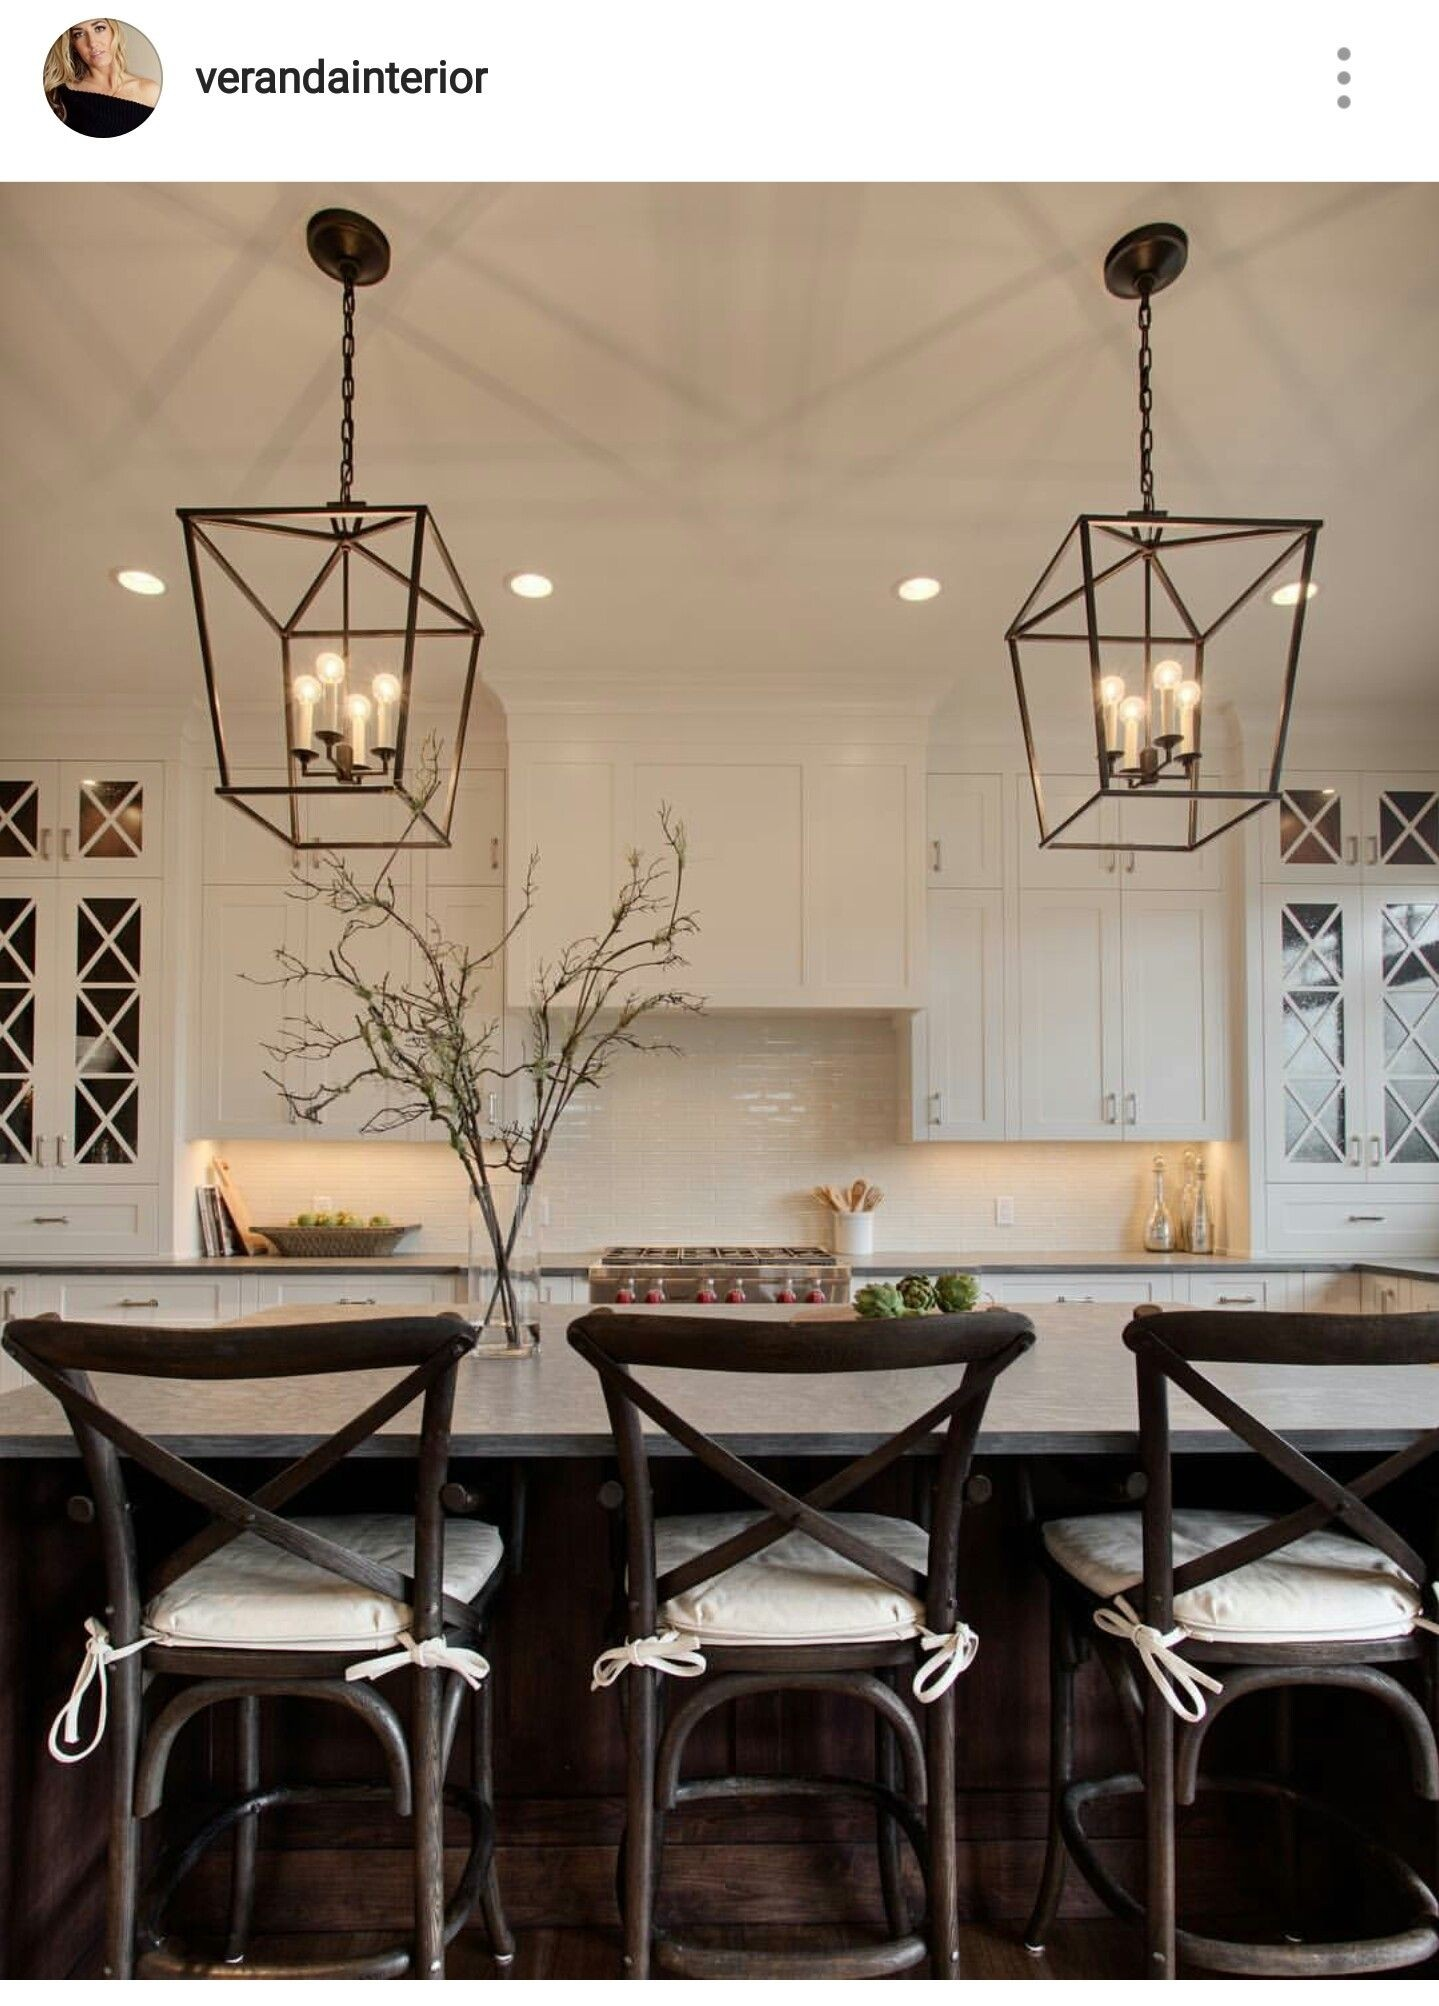 Kitchen Lighting Over Island. Pendant Lighting Over Kitchen Peninsula Island  R